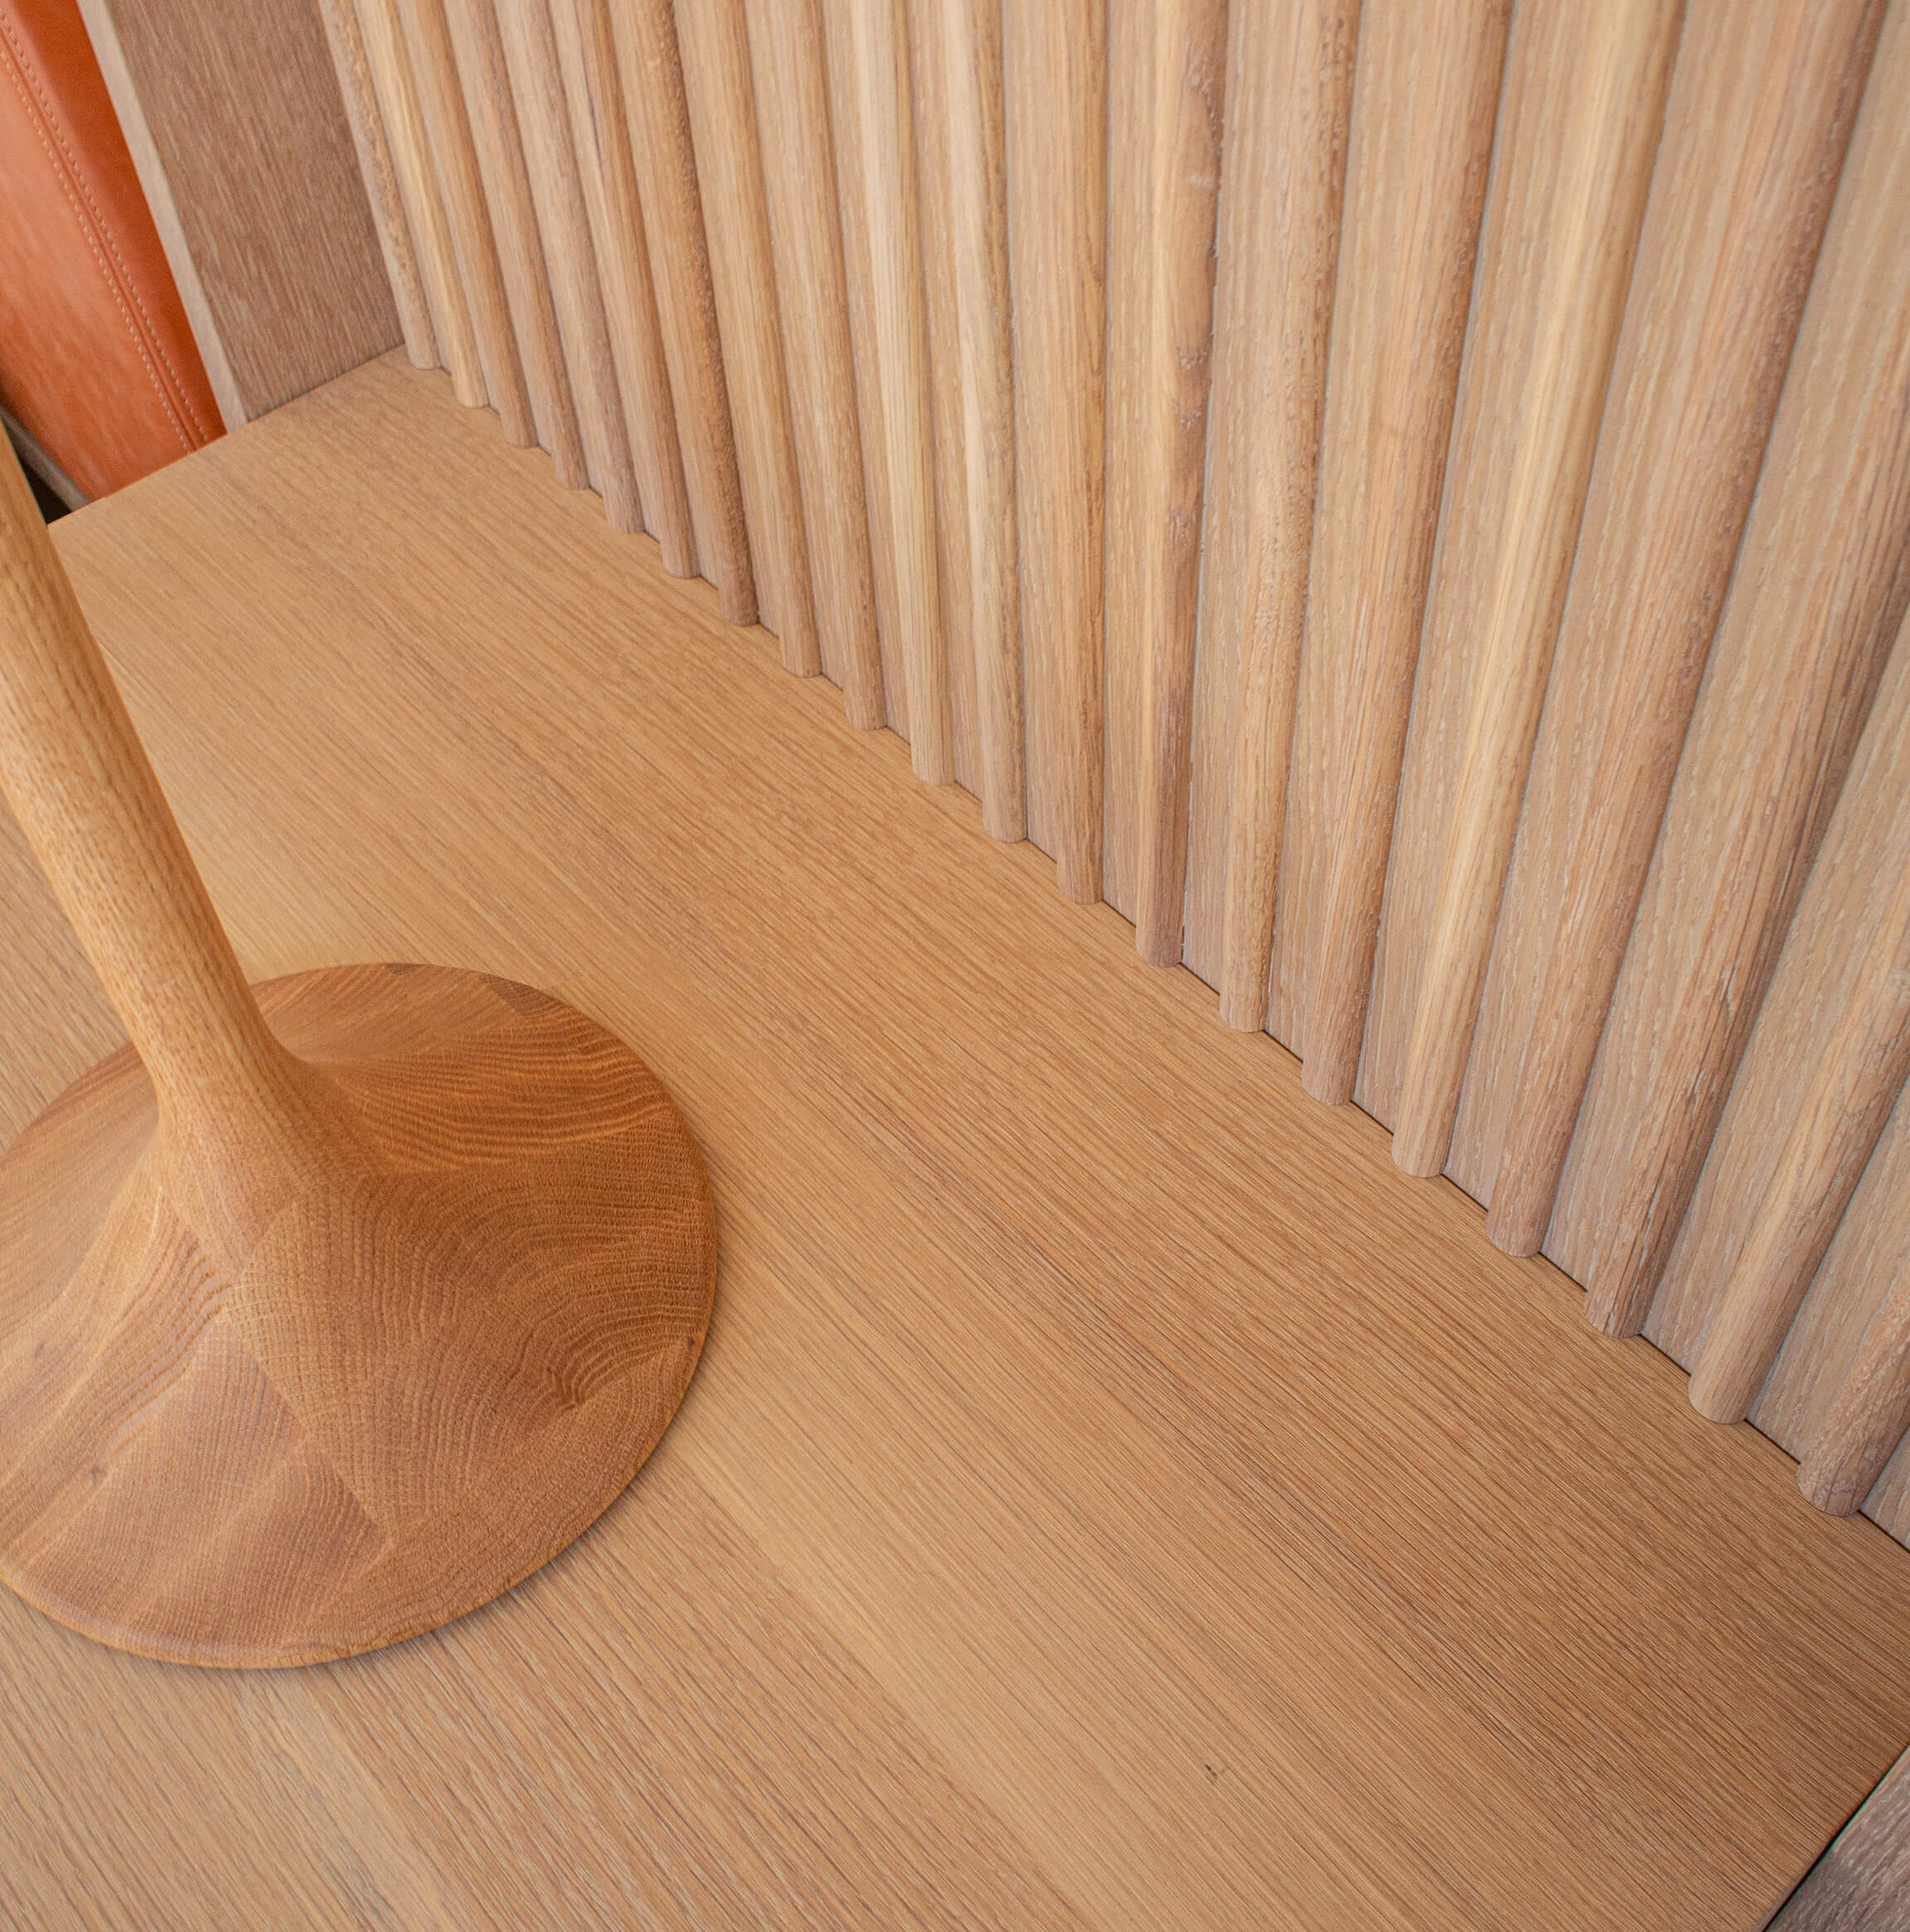 Details of a modern white oak bed frame finished with natural wood finish from Rubio Monocoat.